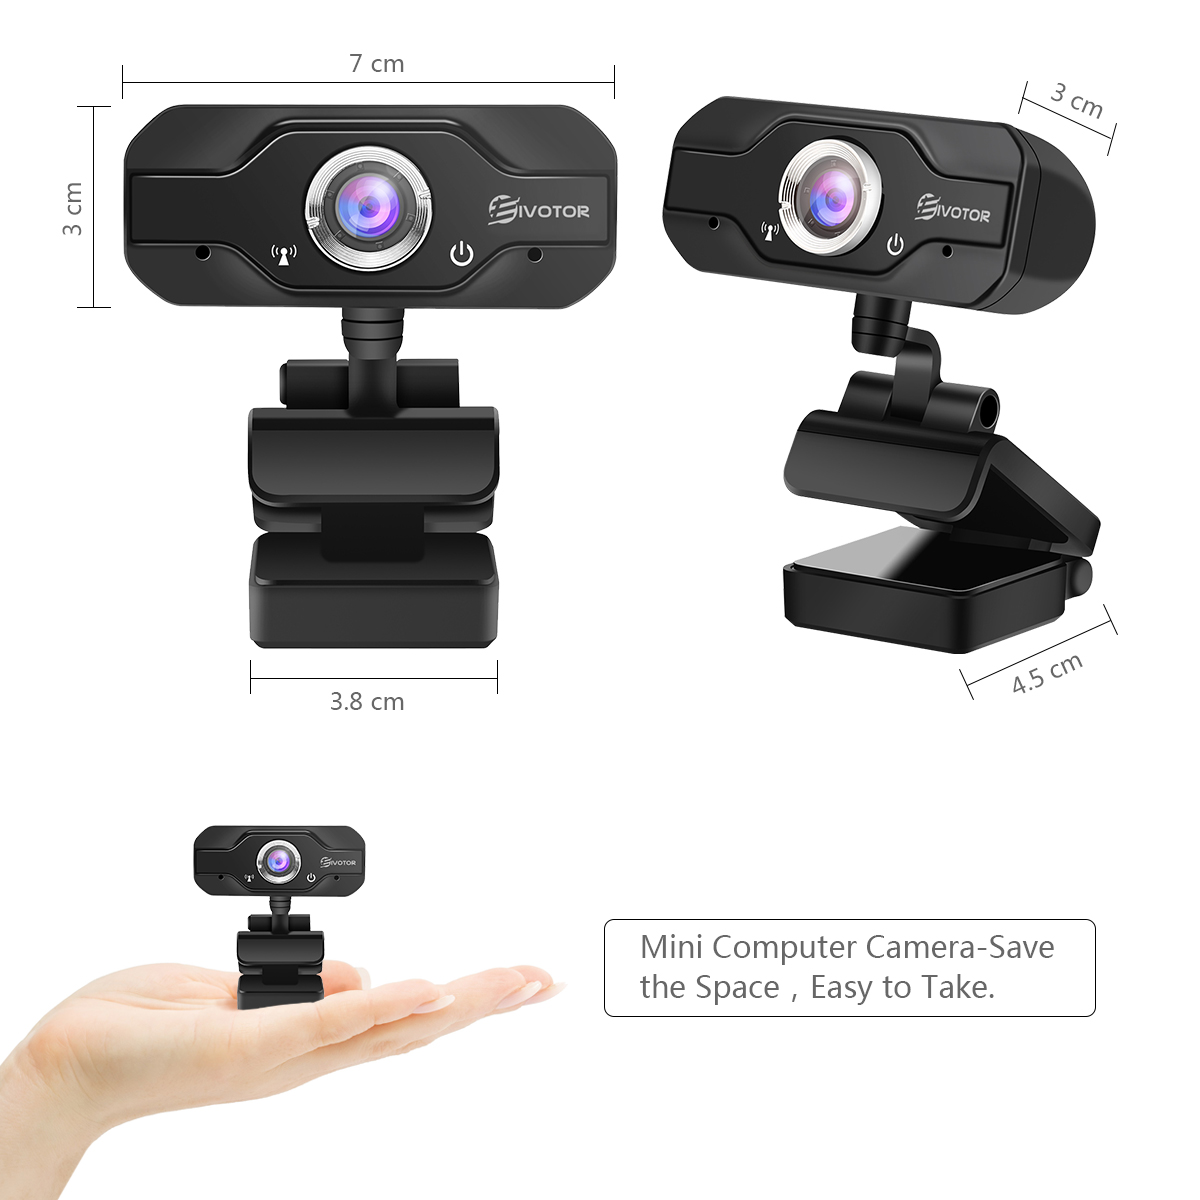 HD Laptop Webcam EIVOTOR USB Mini Webcam Camera with Built-in Microphone for Desktop Laptop 360-Degree Swivel 720P Camera